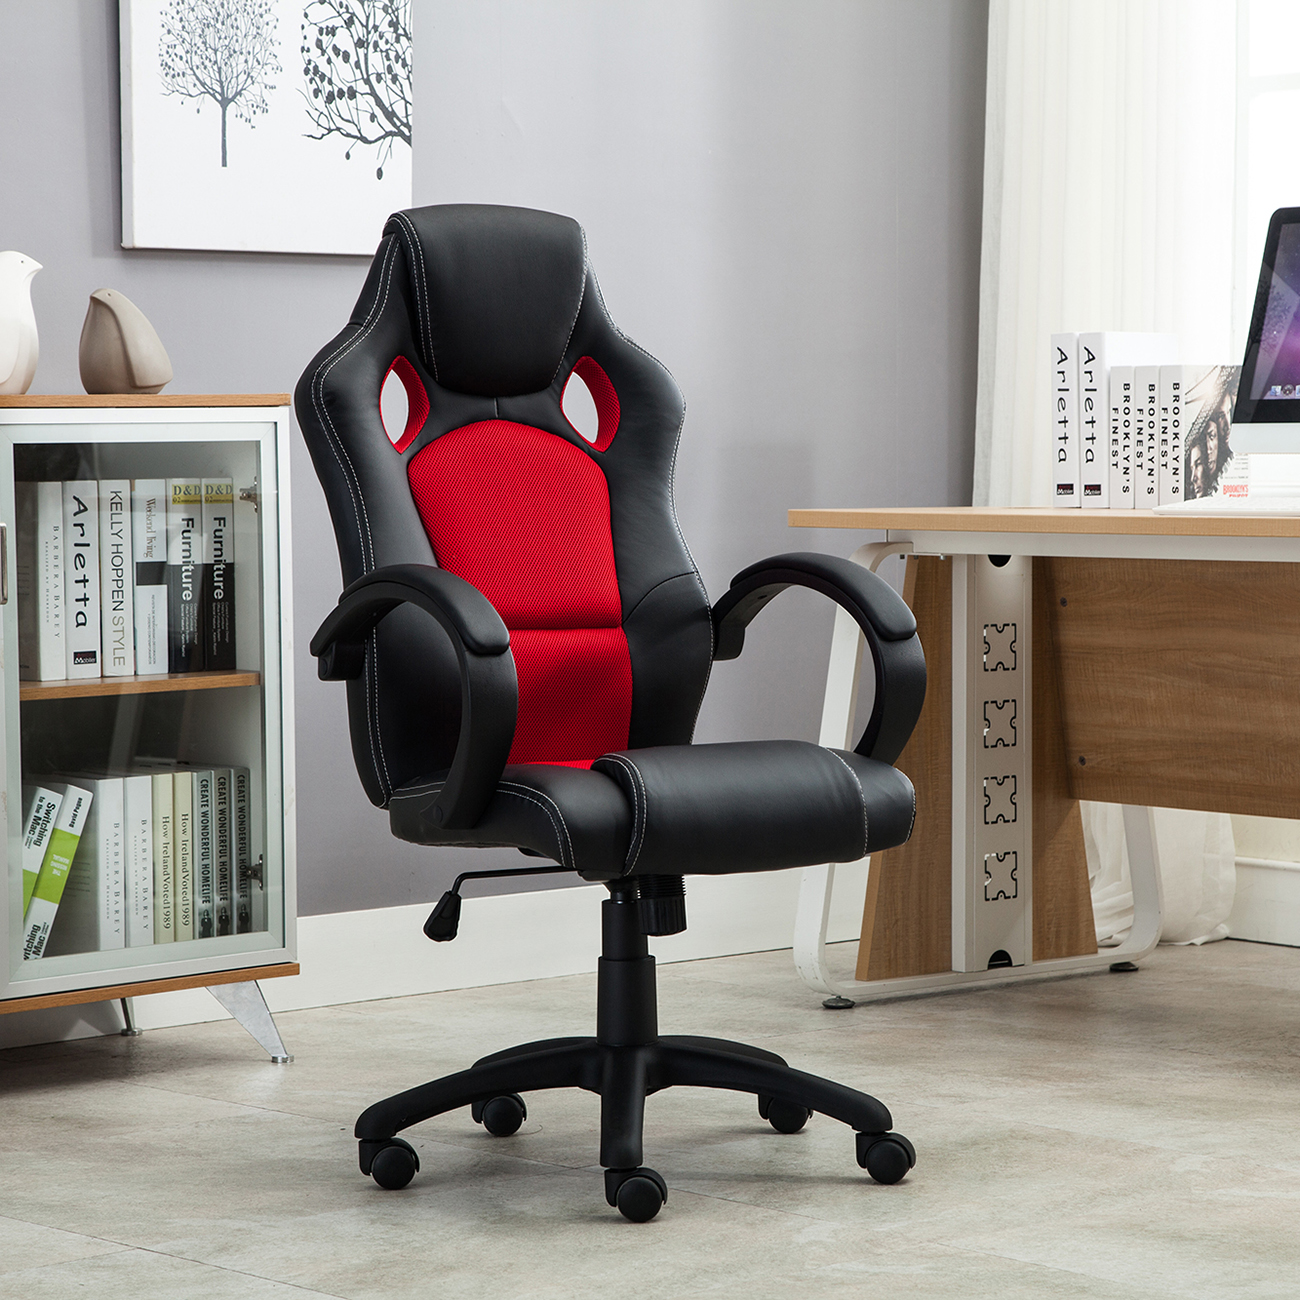 Comfortable Computer Chairs Office Chair Ergonomic Computer Mesh Pu Leather Desk Seat